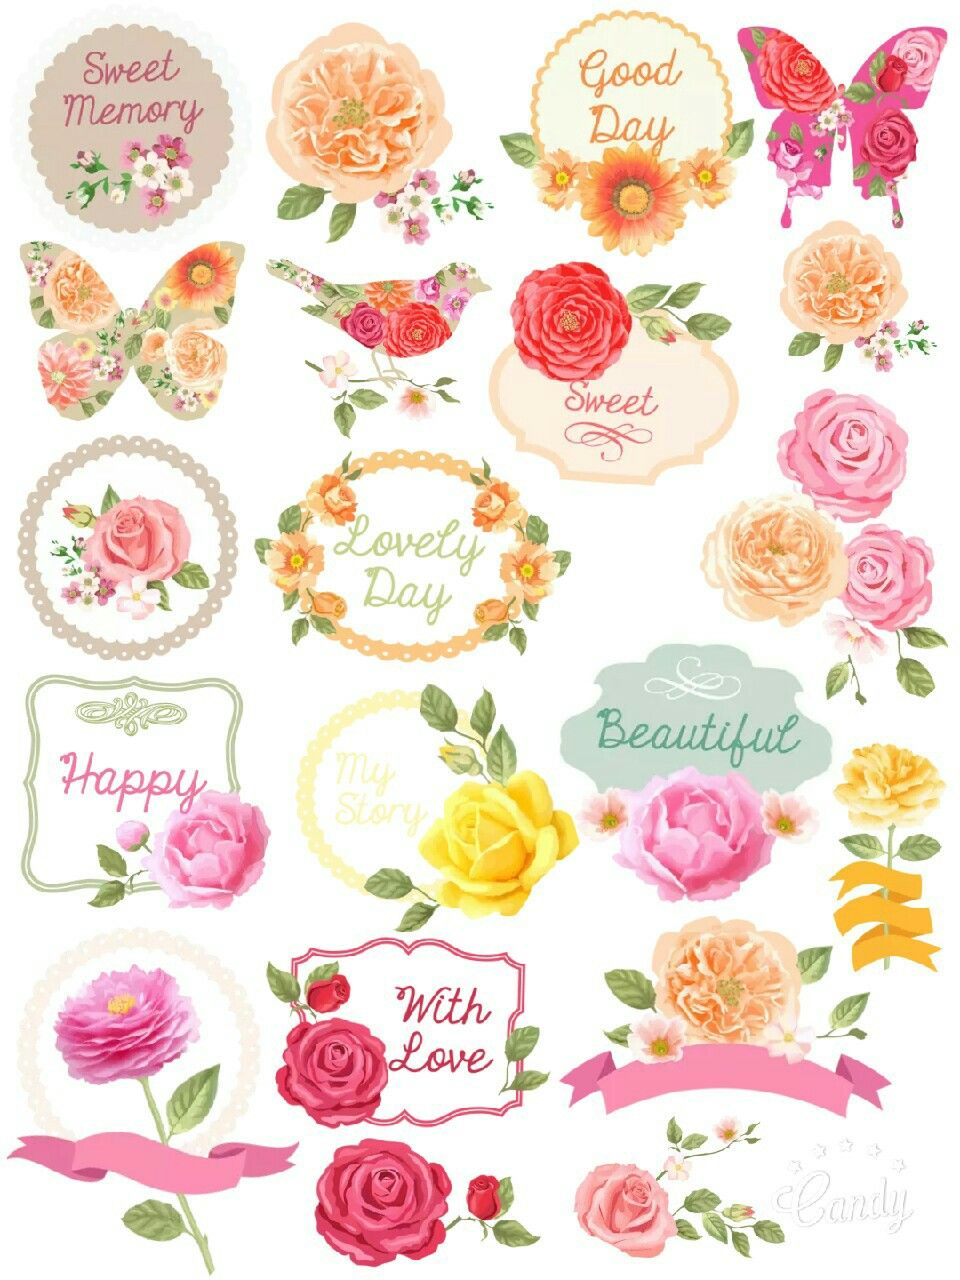 flowers powers stickers printable #free #stickers #printable #diy